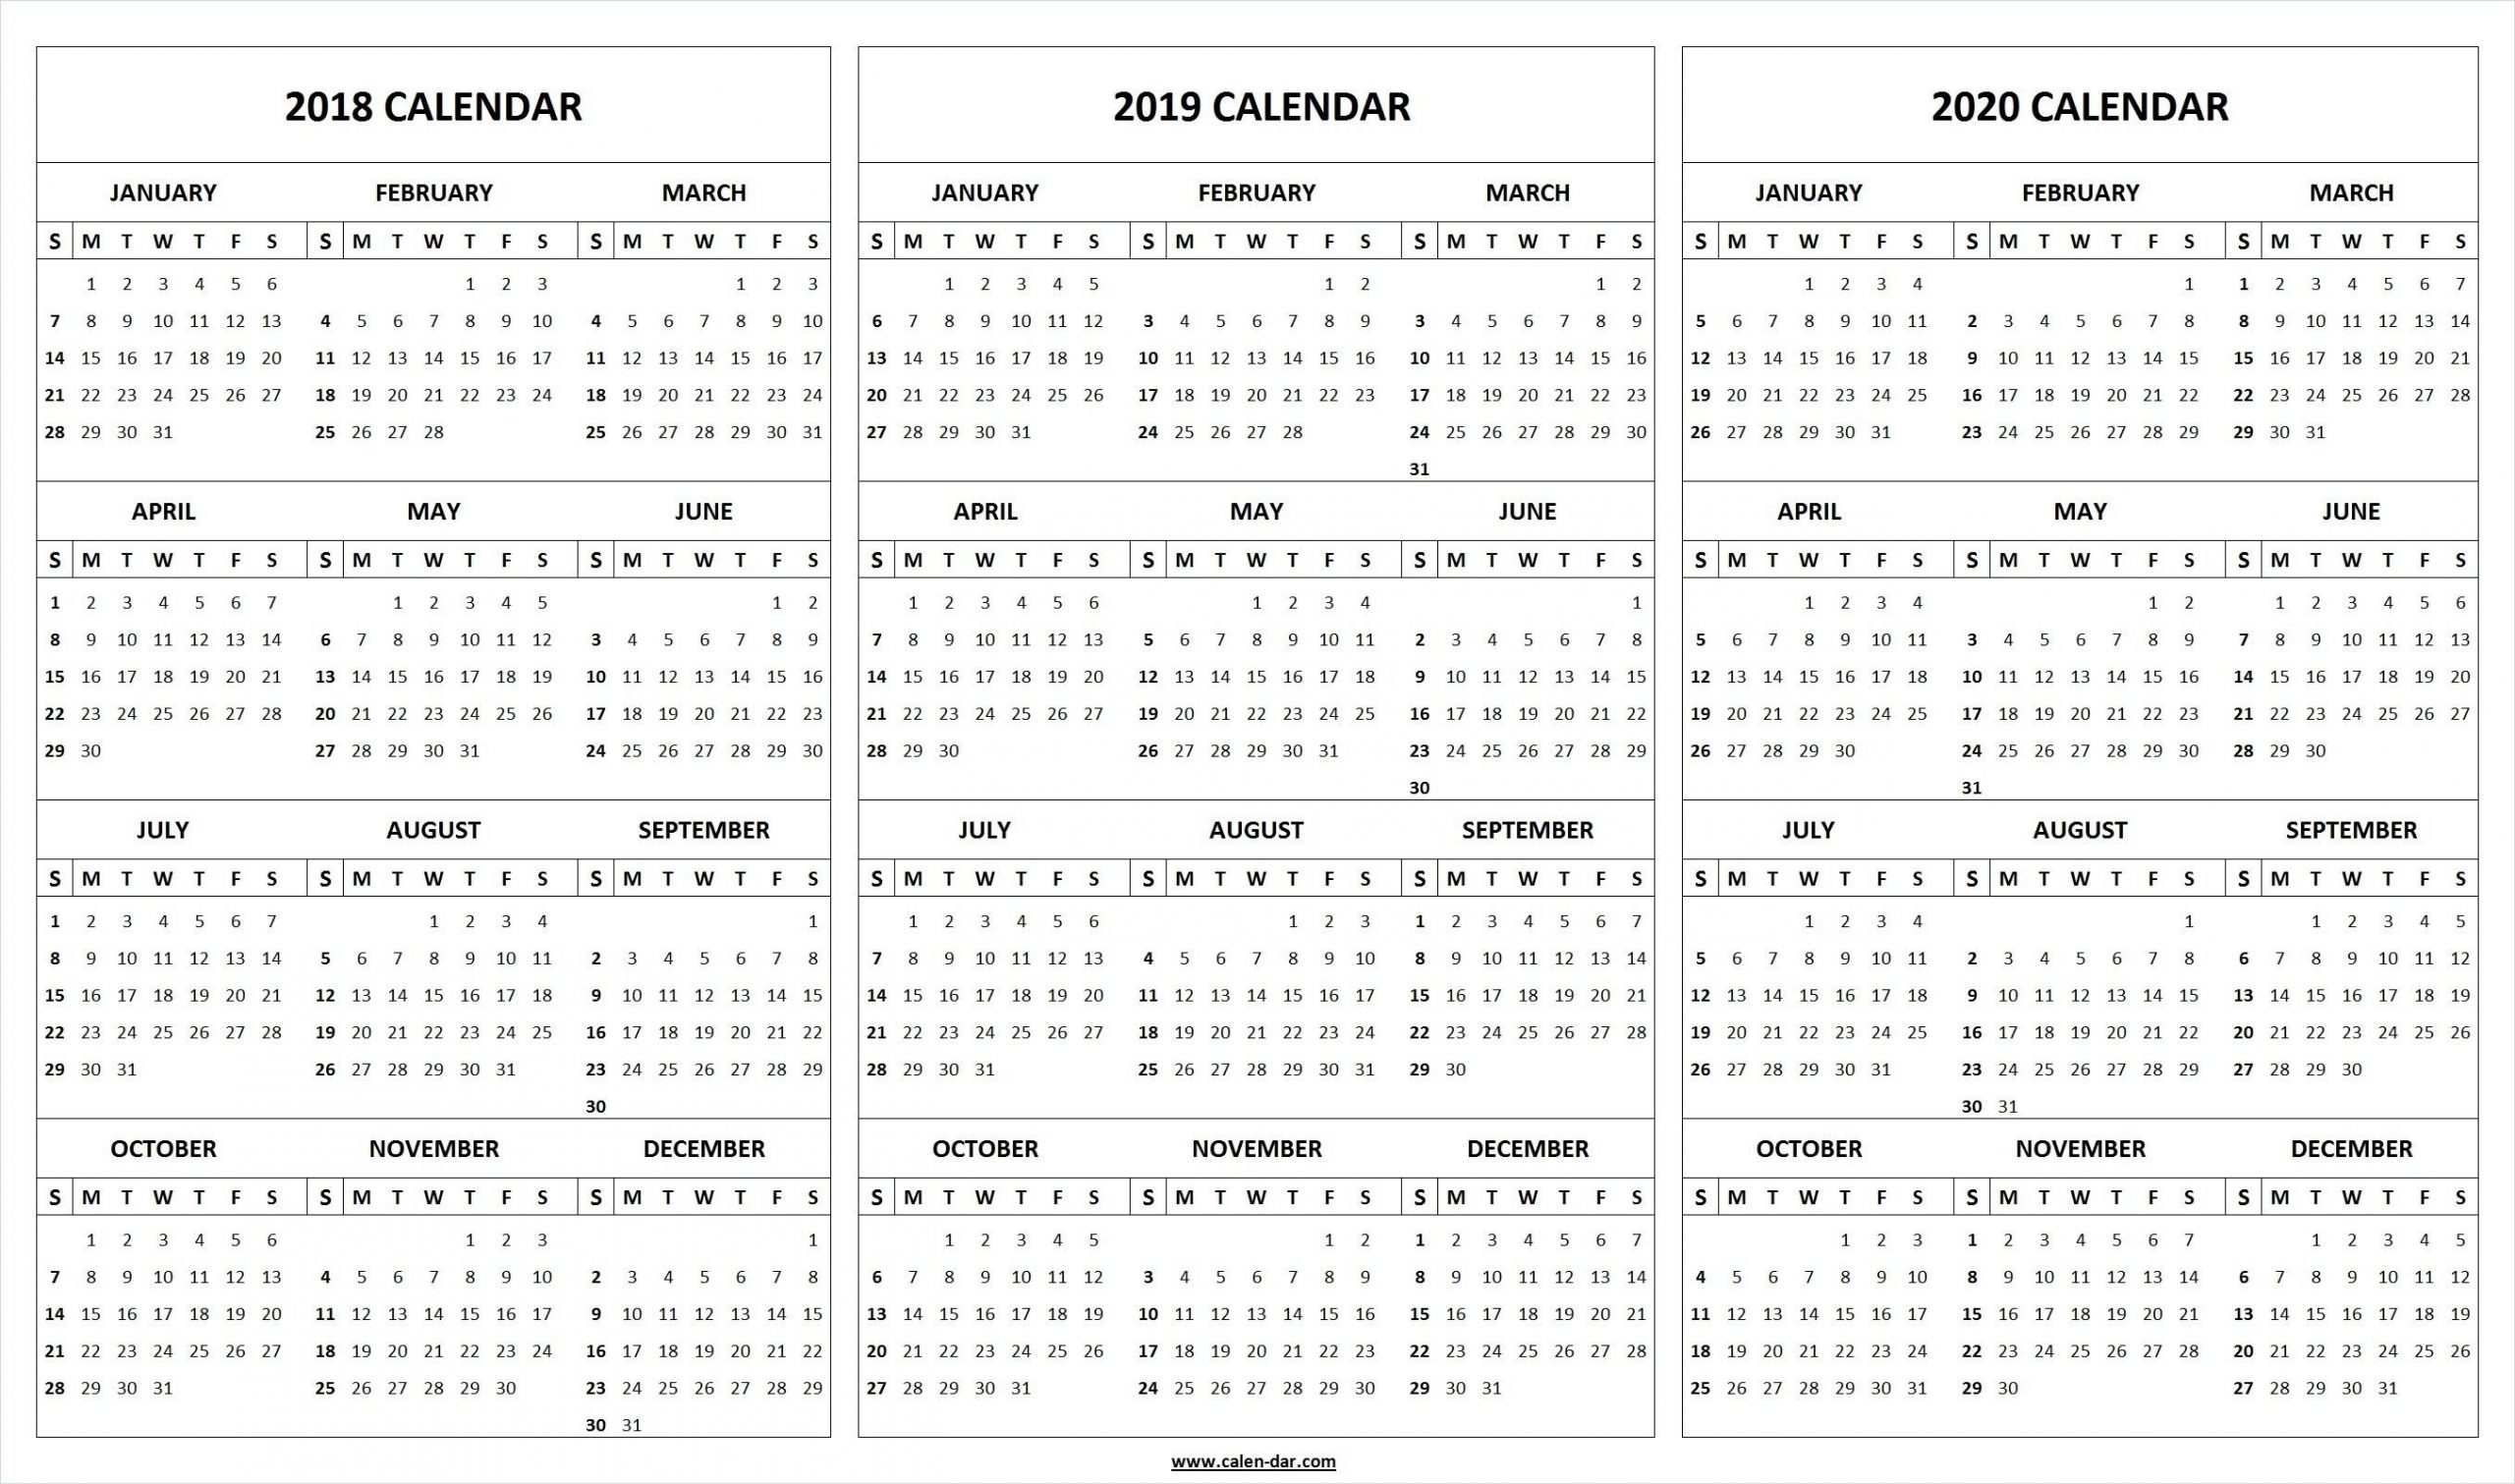 Monthly Printable Calendars 2020 Half Page - Calendar Inspiration Design in Half Page Calendars 20212 Image